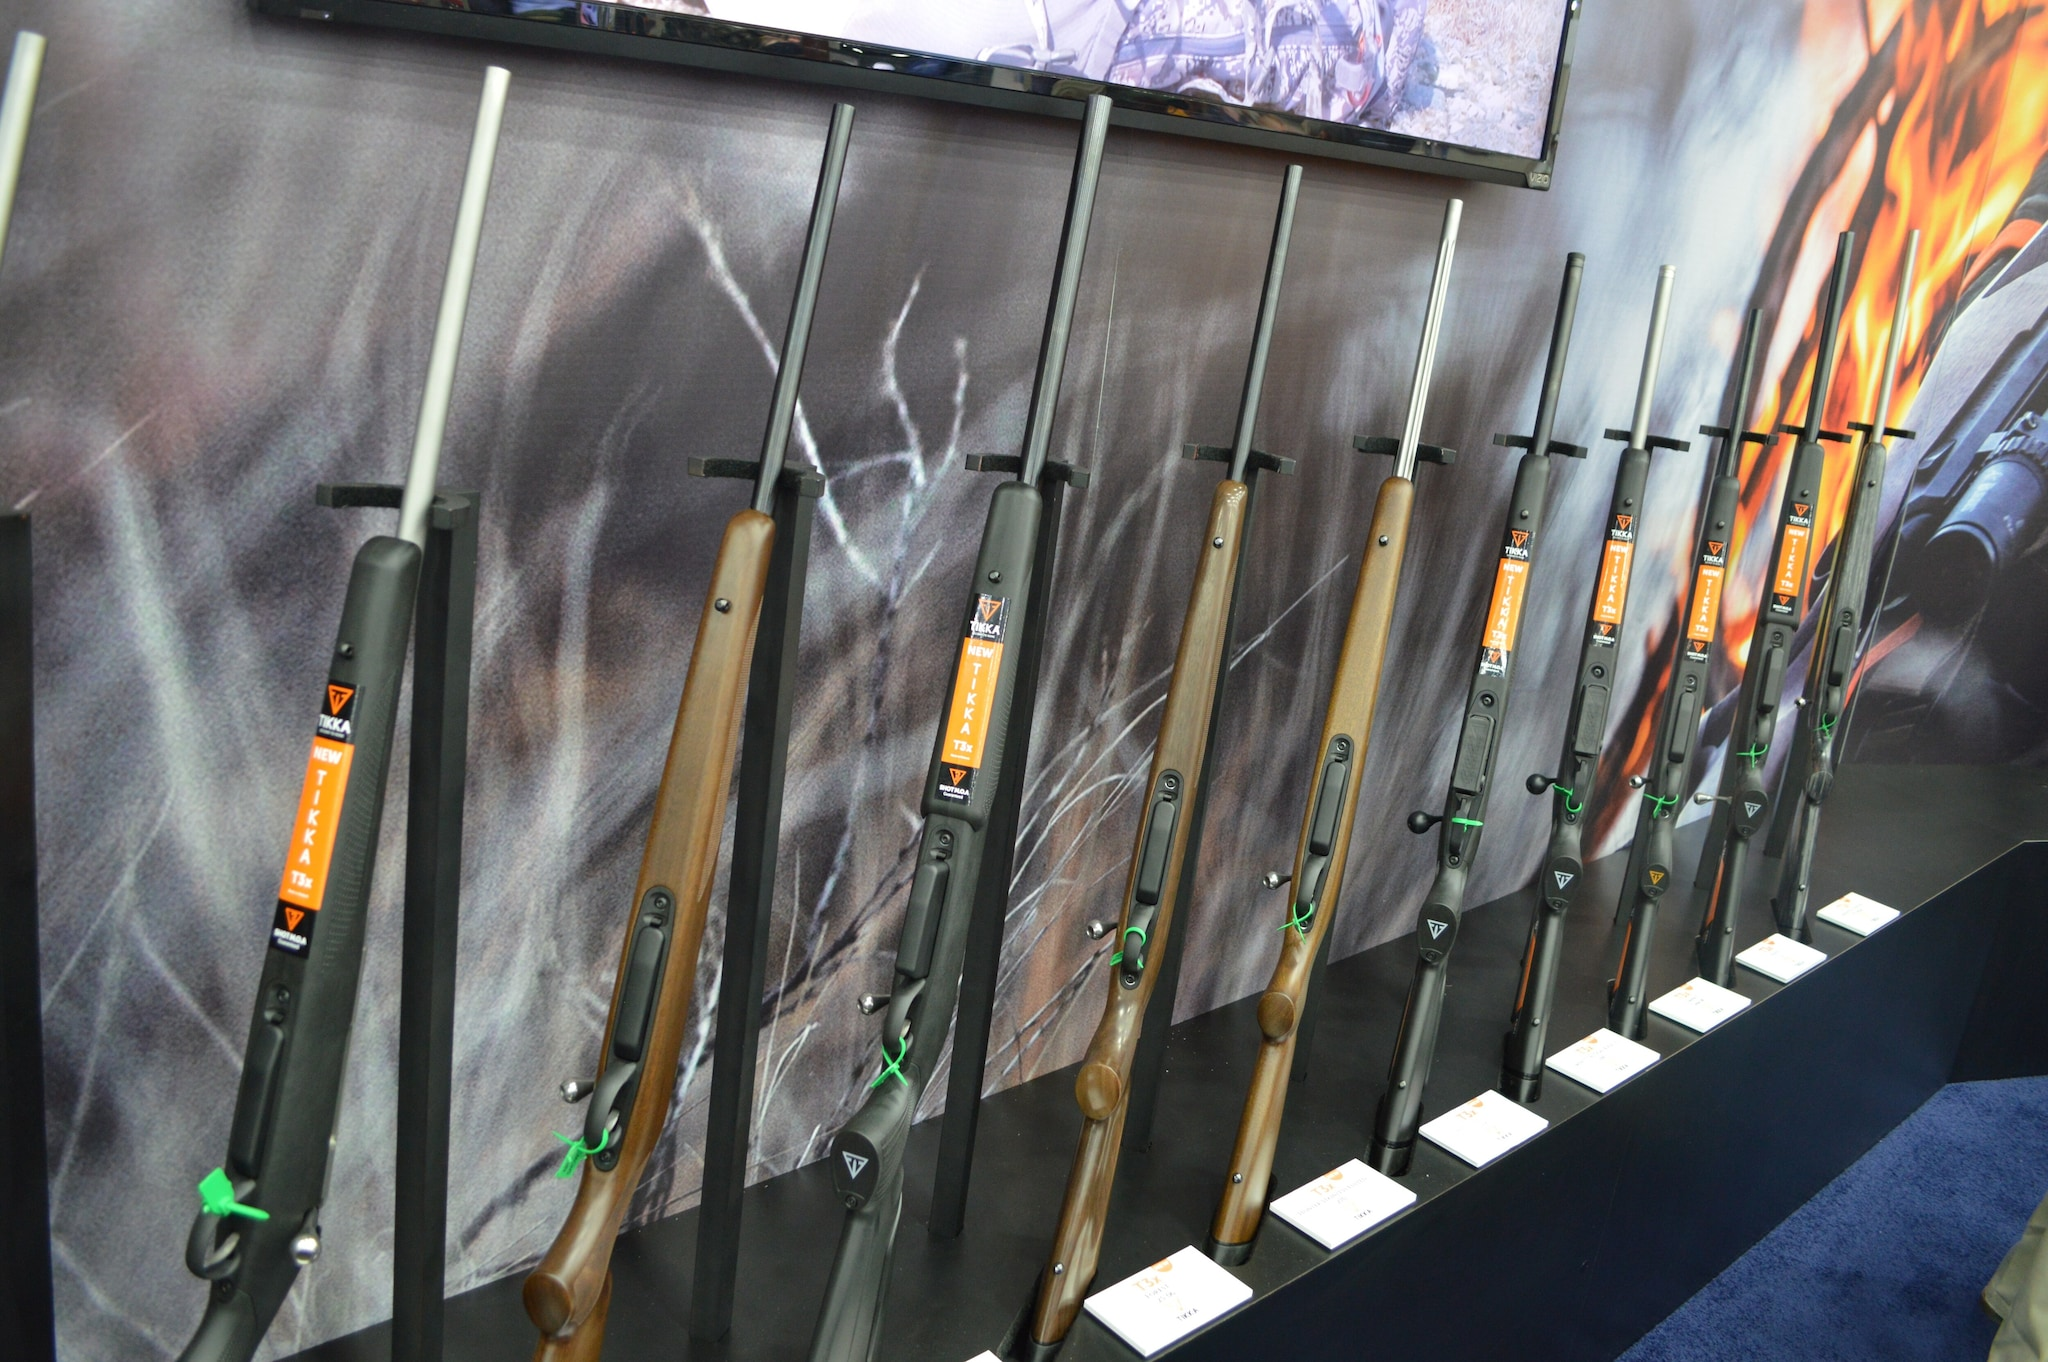 Tikka launched the new T3x line of rifles at NRAAM, with seven models covering 15 calibers. (Photo: Kristin Alberts/Guns.com).